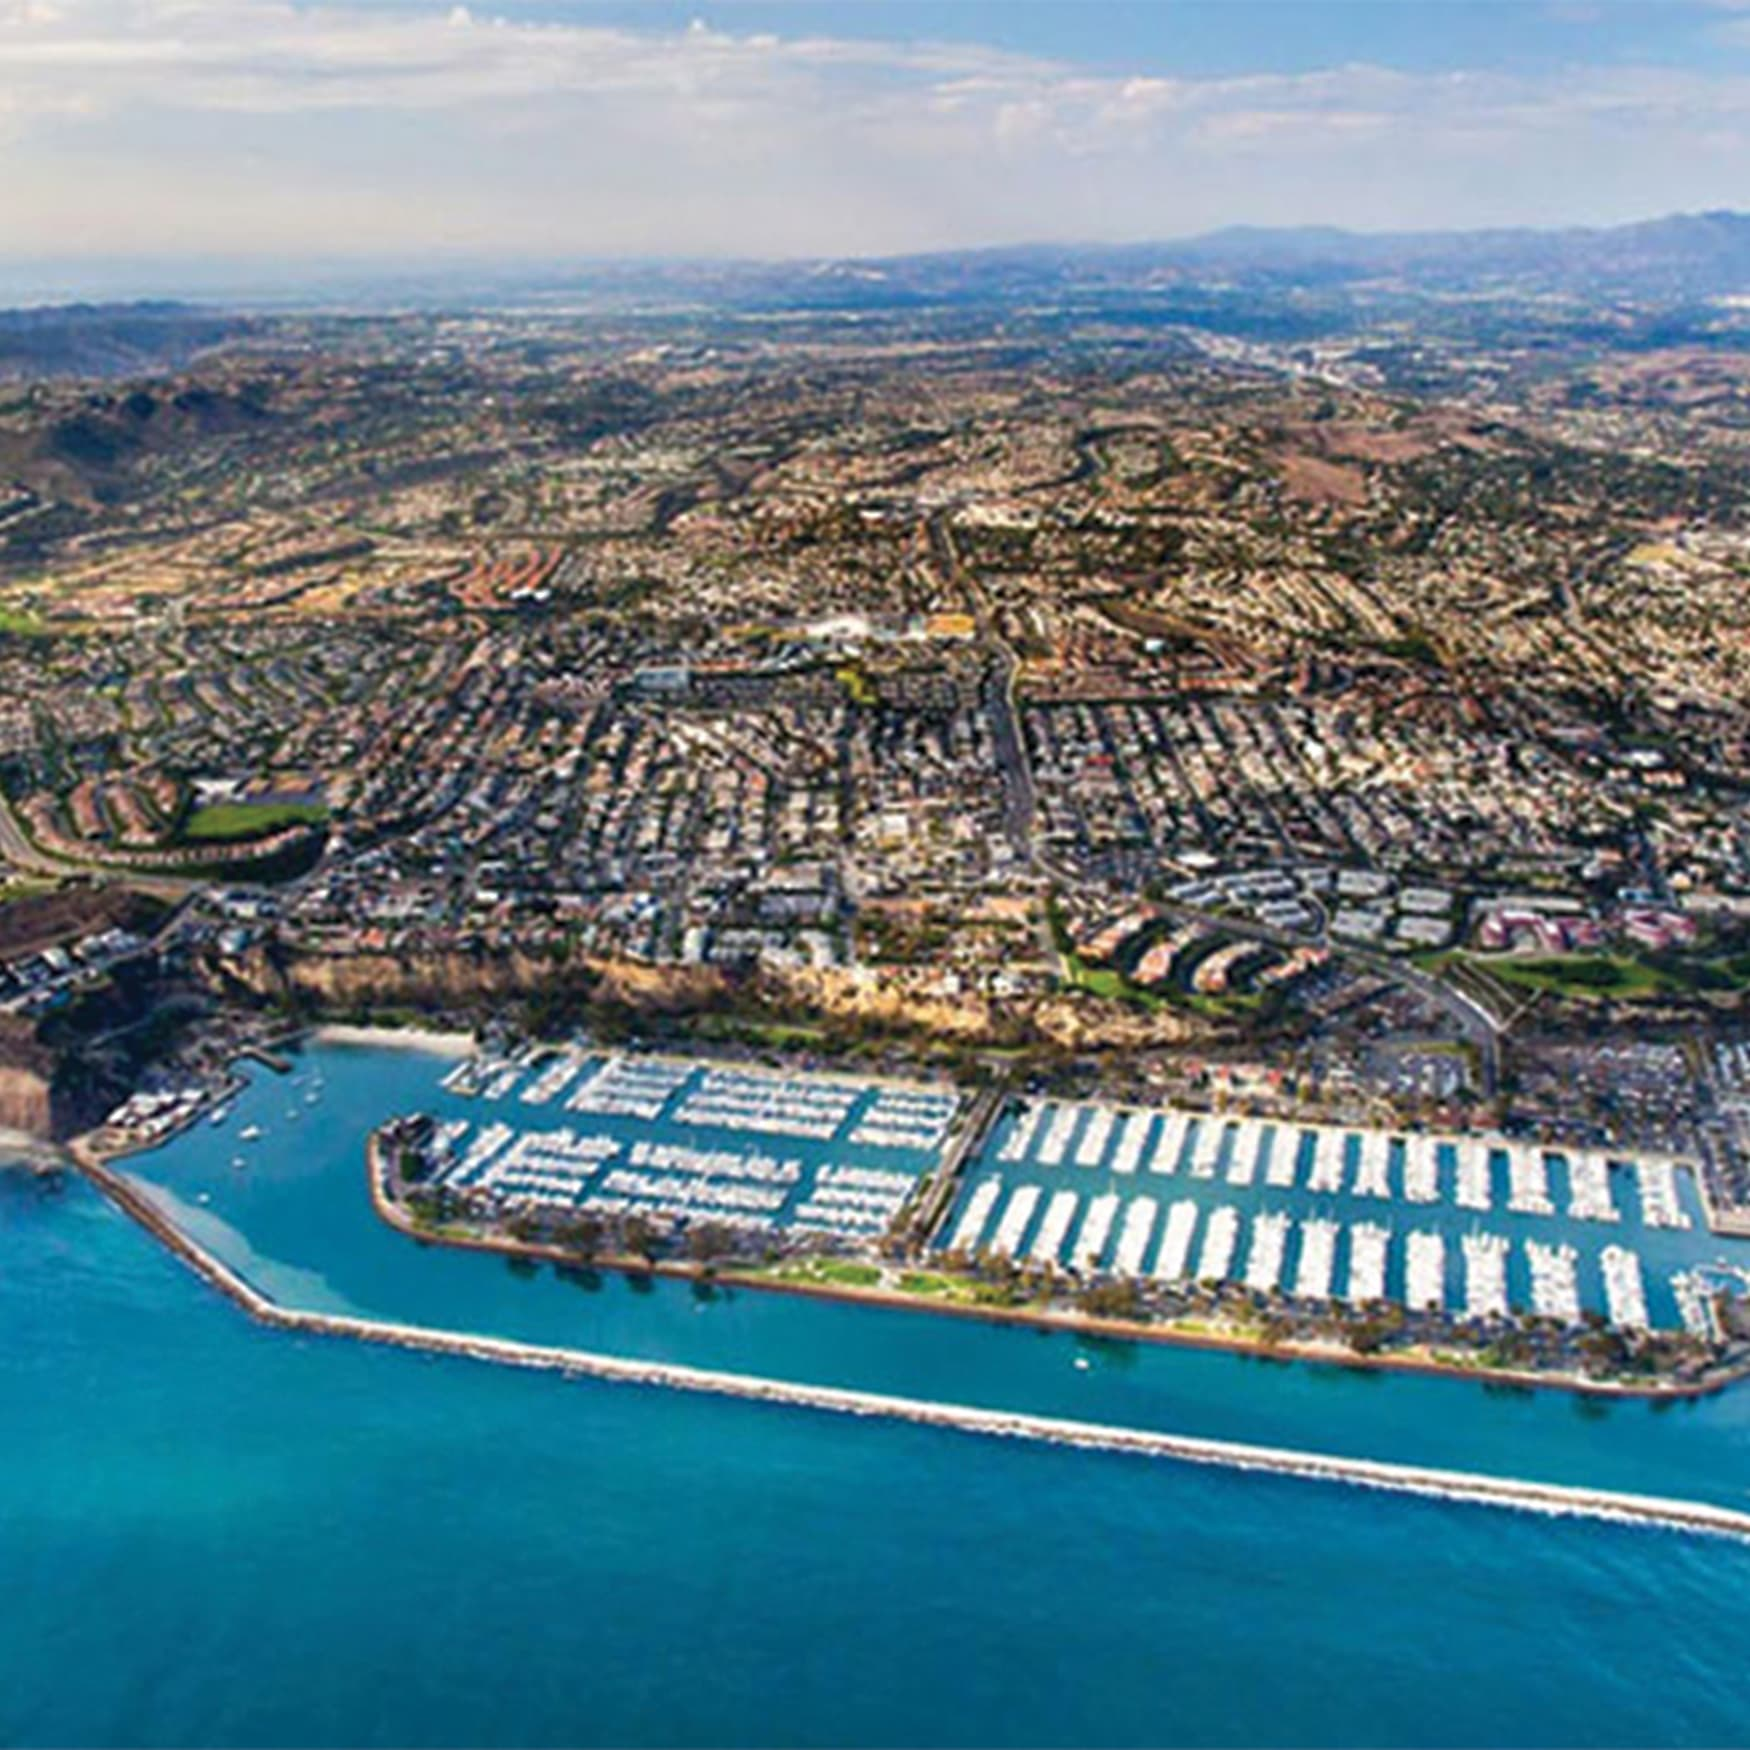 An aerial image of the beautiful Dana Point Harbor.